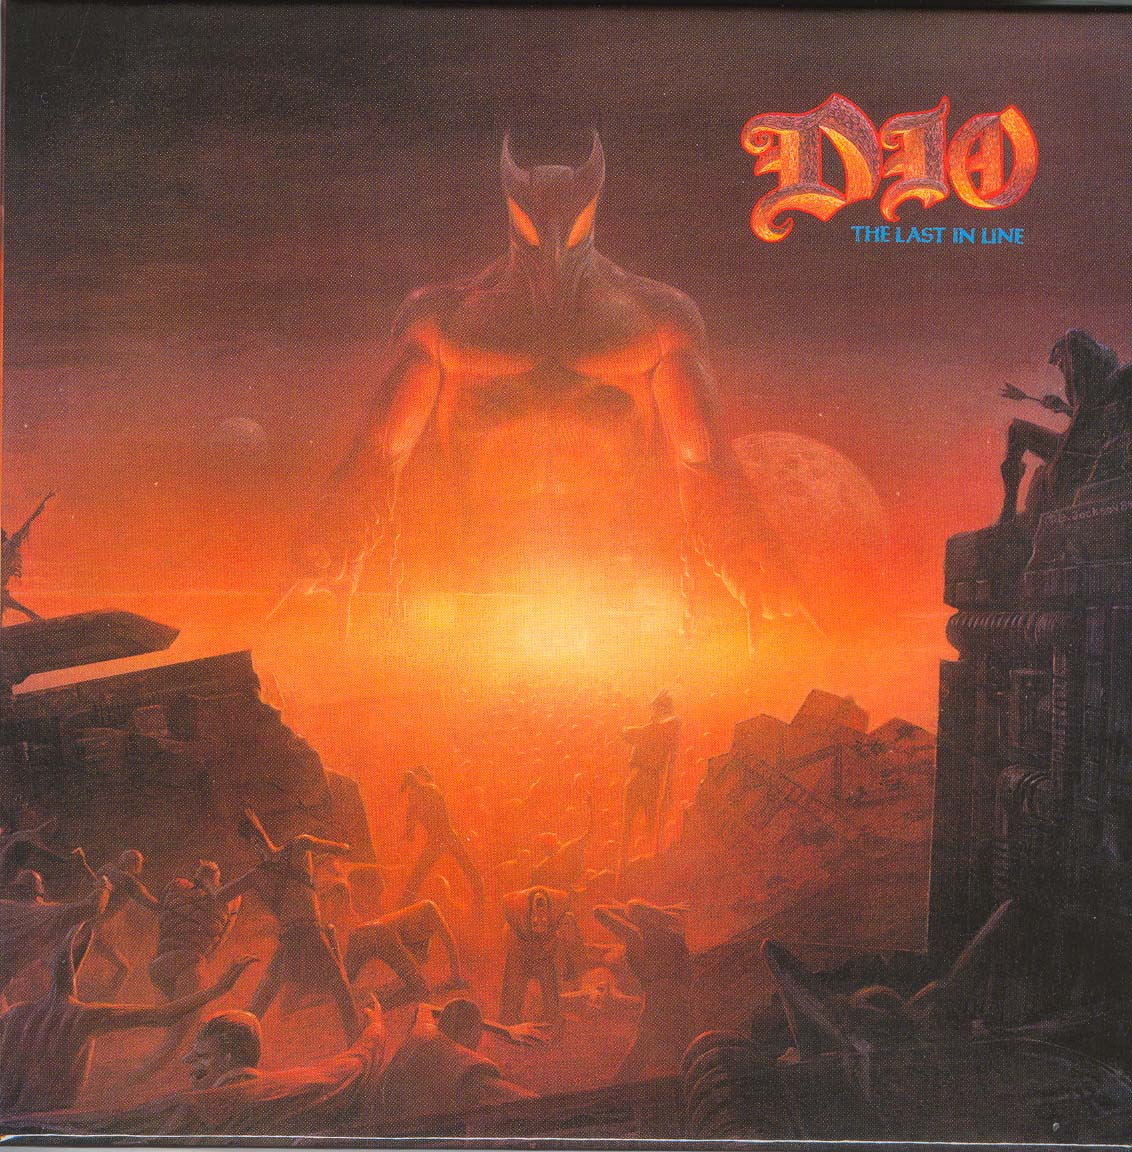 http://www.dio.net/pictures_cd/the_last_in_line_j_uicy93390-3_boxset_front_big.jpg